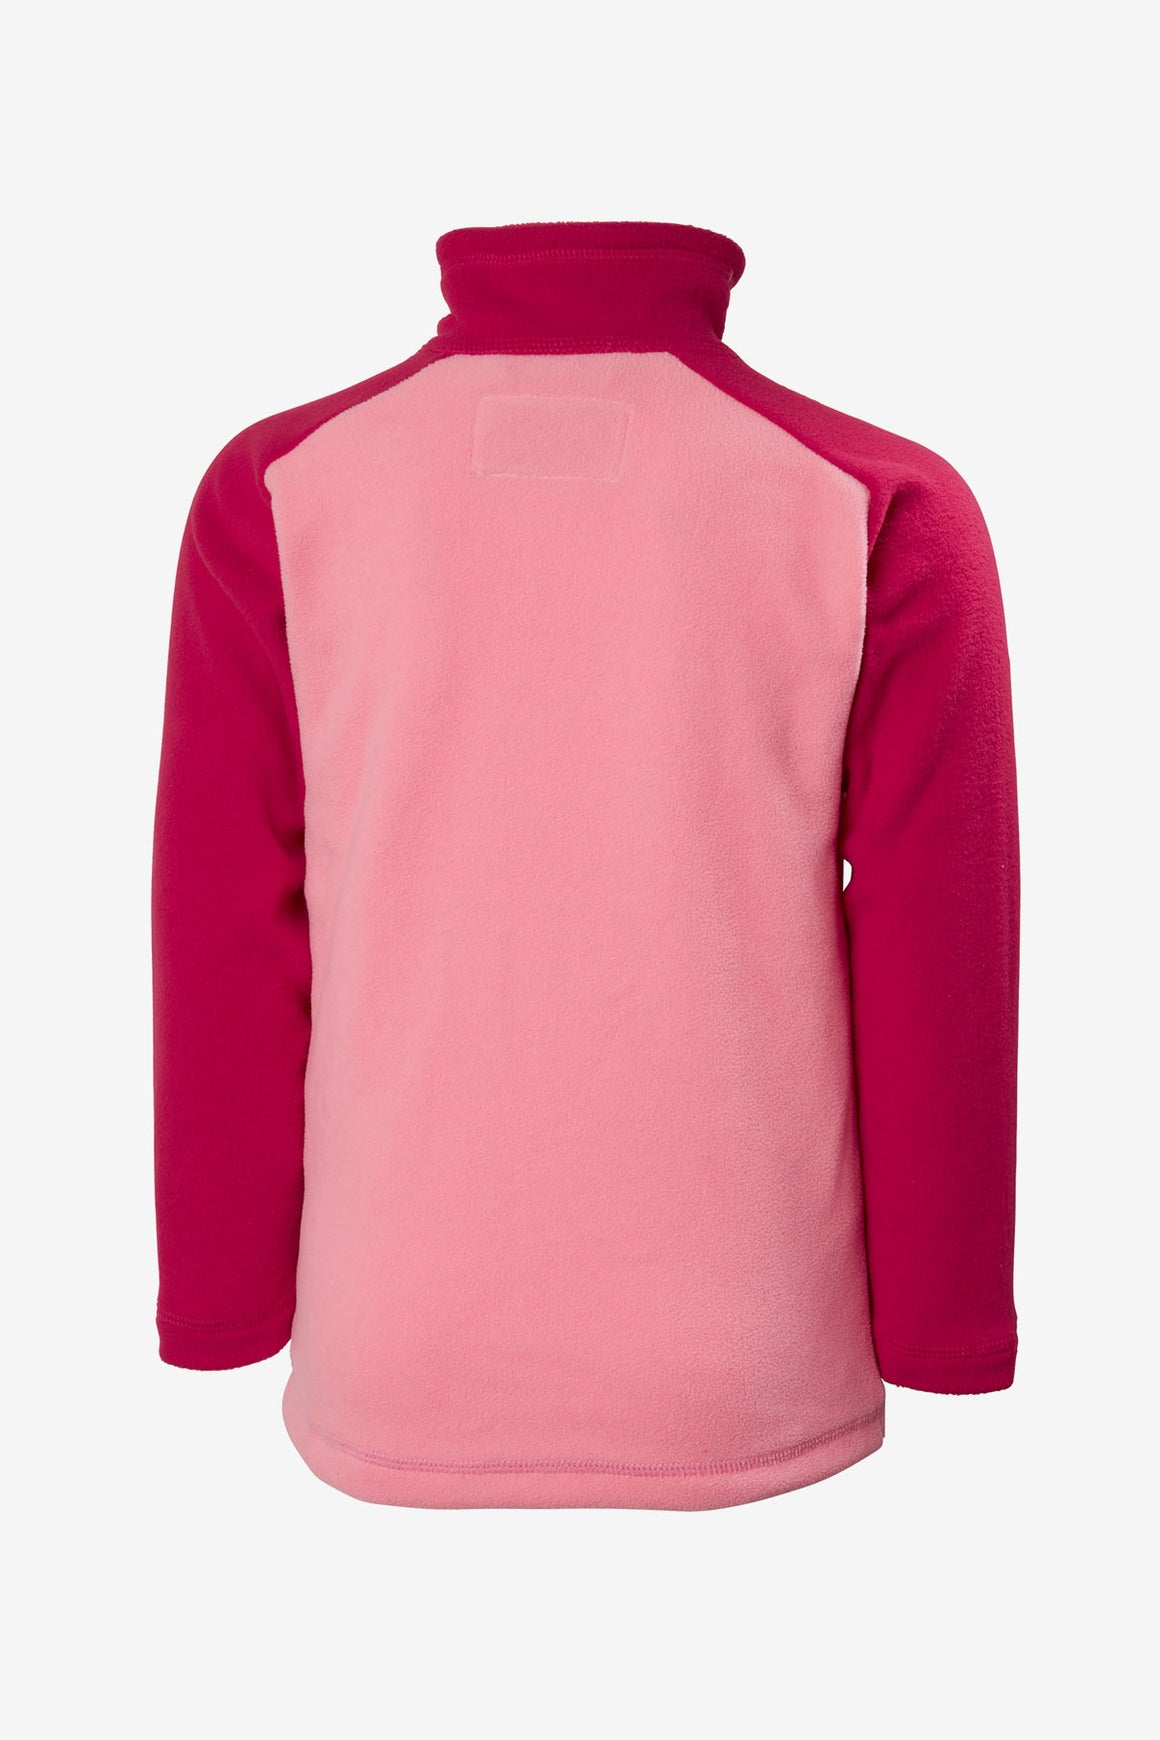 Helly Hansen Daybreaker Fleece Jacket - Strawberry Pink